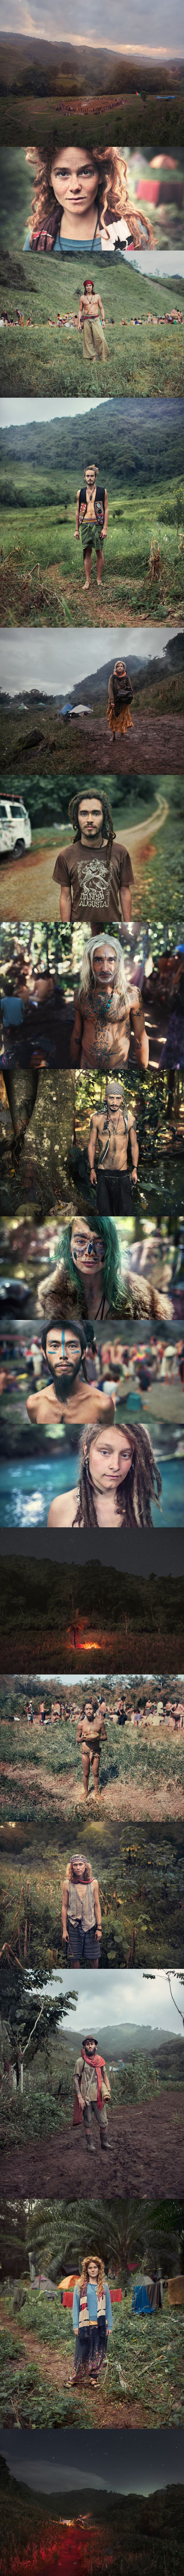 Rainbow Gathering 2012-2013  By Benoit Paillé